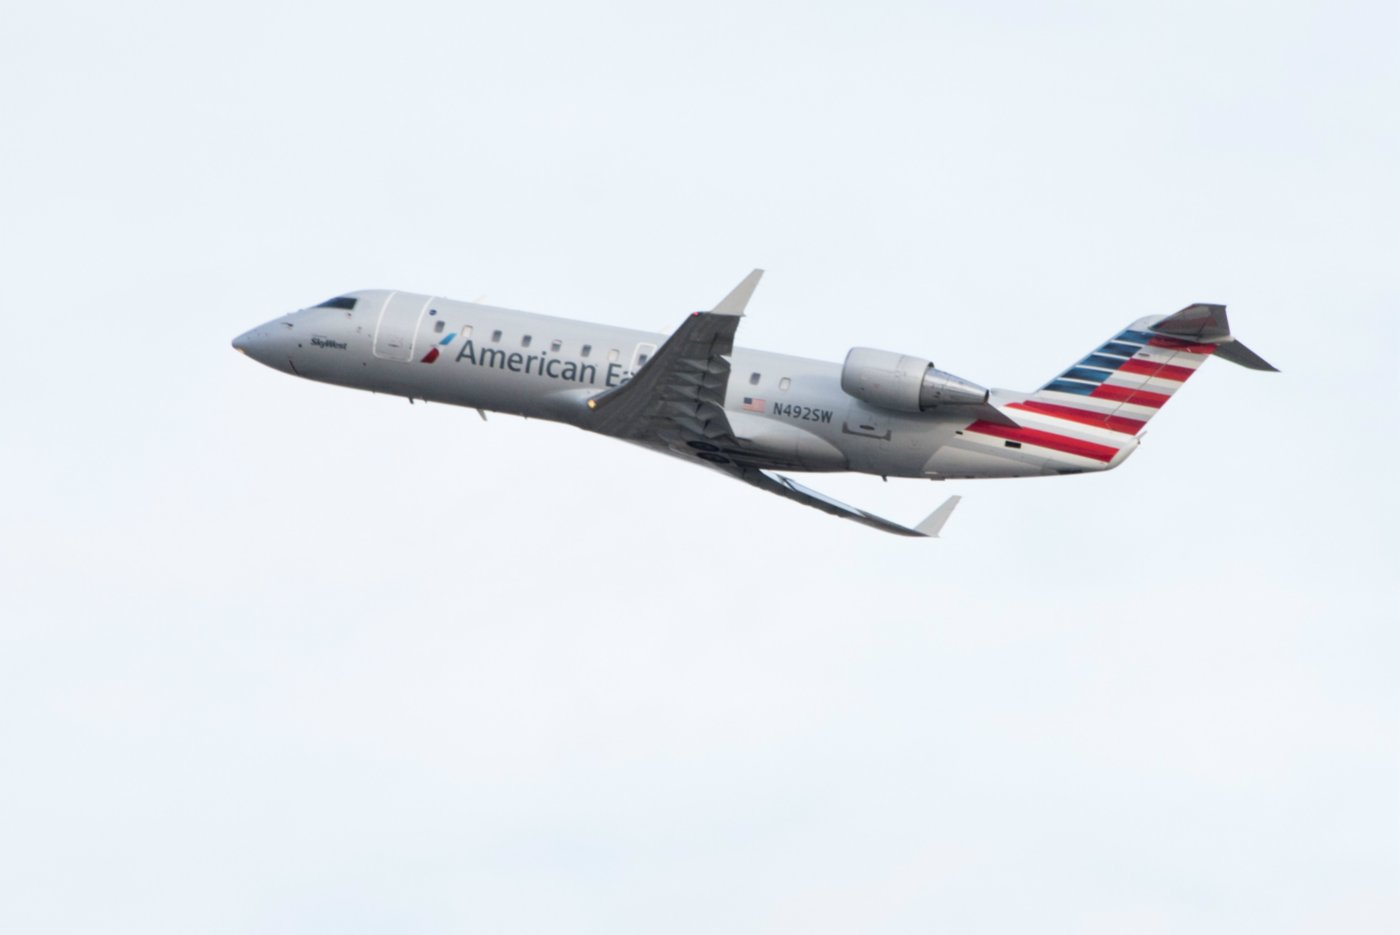 SkyWest Airlines will be offering flights to Phoenix, Arizona, under as American Eagle starting November 2016. The new route is made possible through a partnership with American Airlines. location and date of photo unknown | Photo courtesy of SkyWest Airlines, St. George News